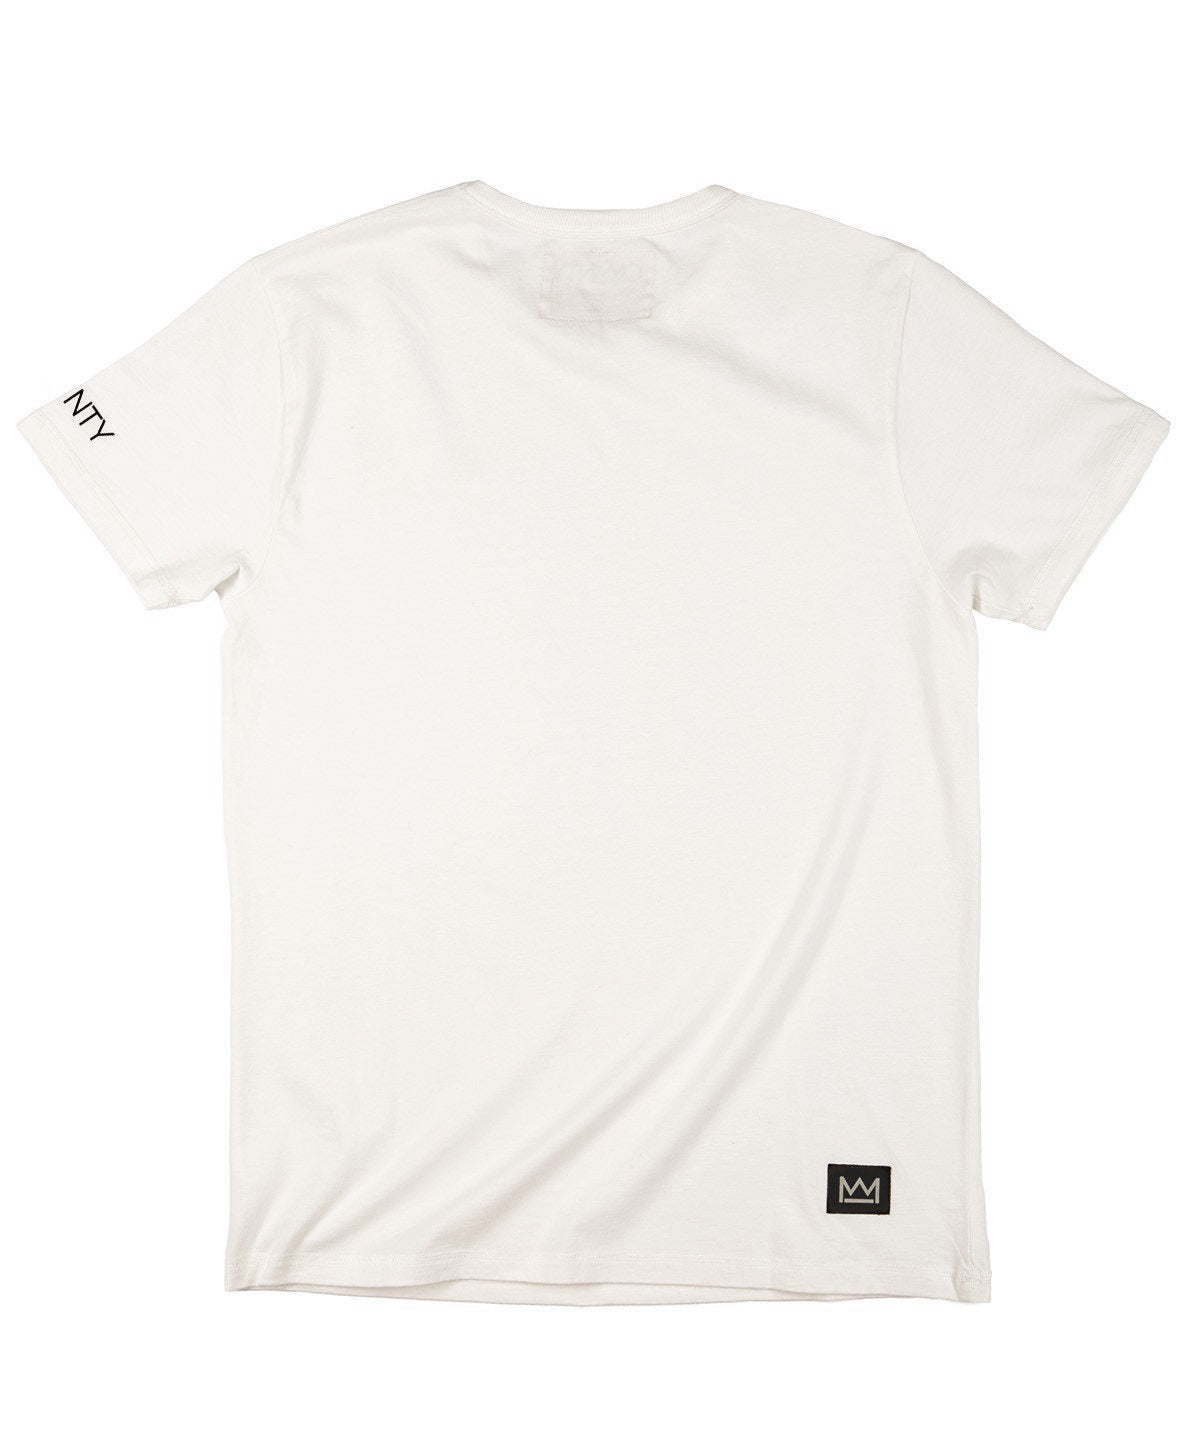 CMMNTY x Ryan Roadkill T-Shirt White